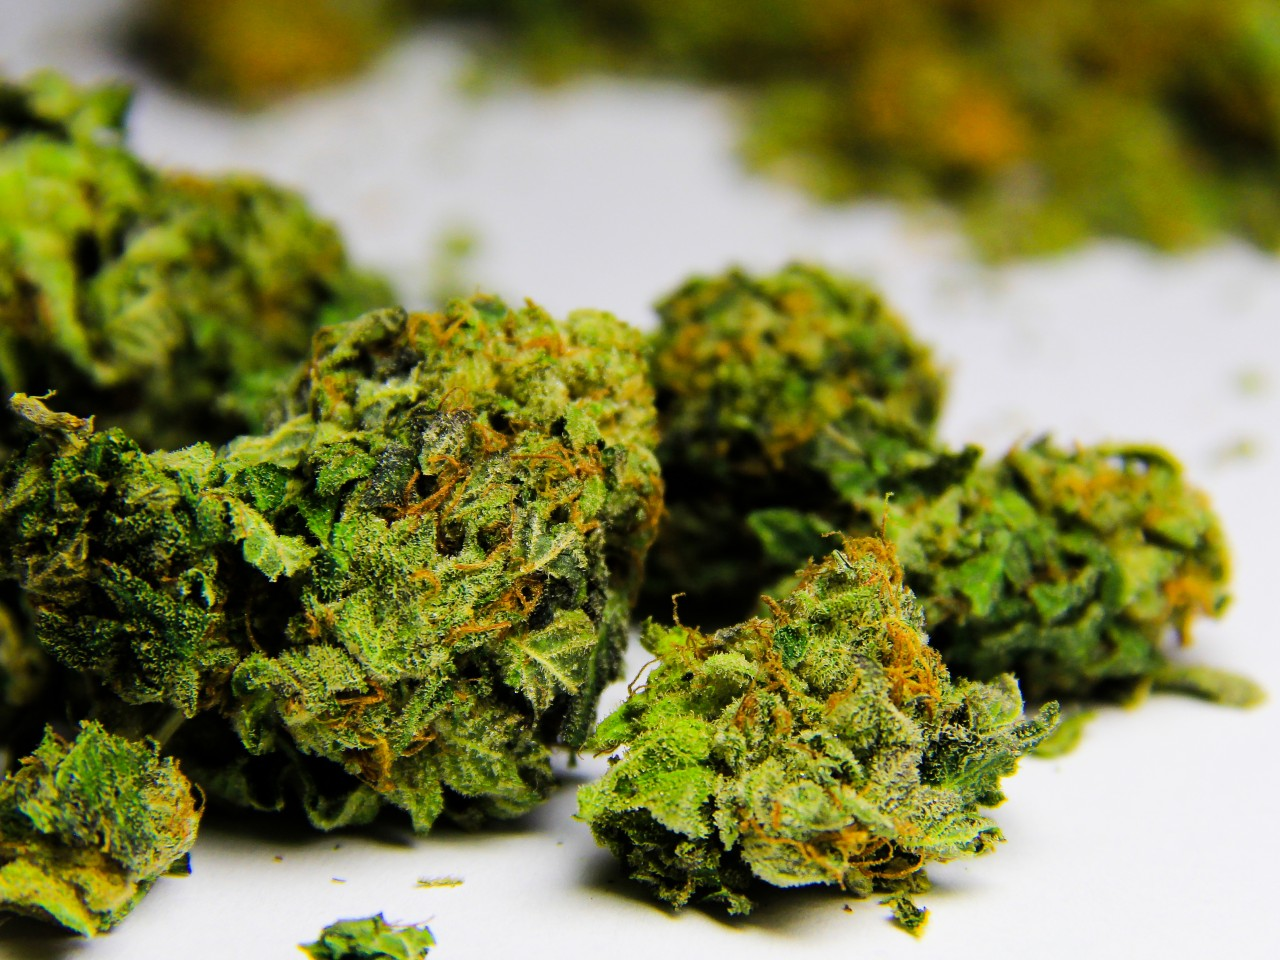 the controversial legalization of marijuana from a medical standpoint